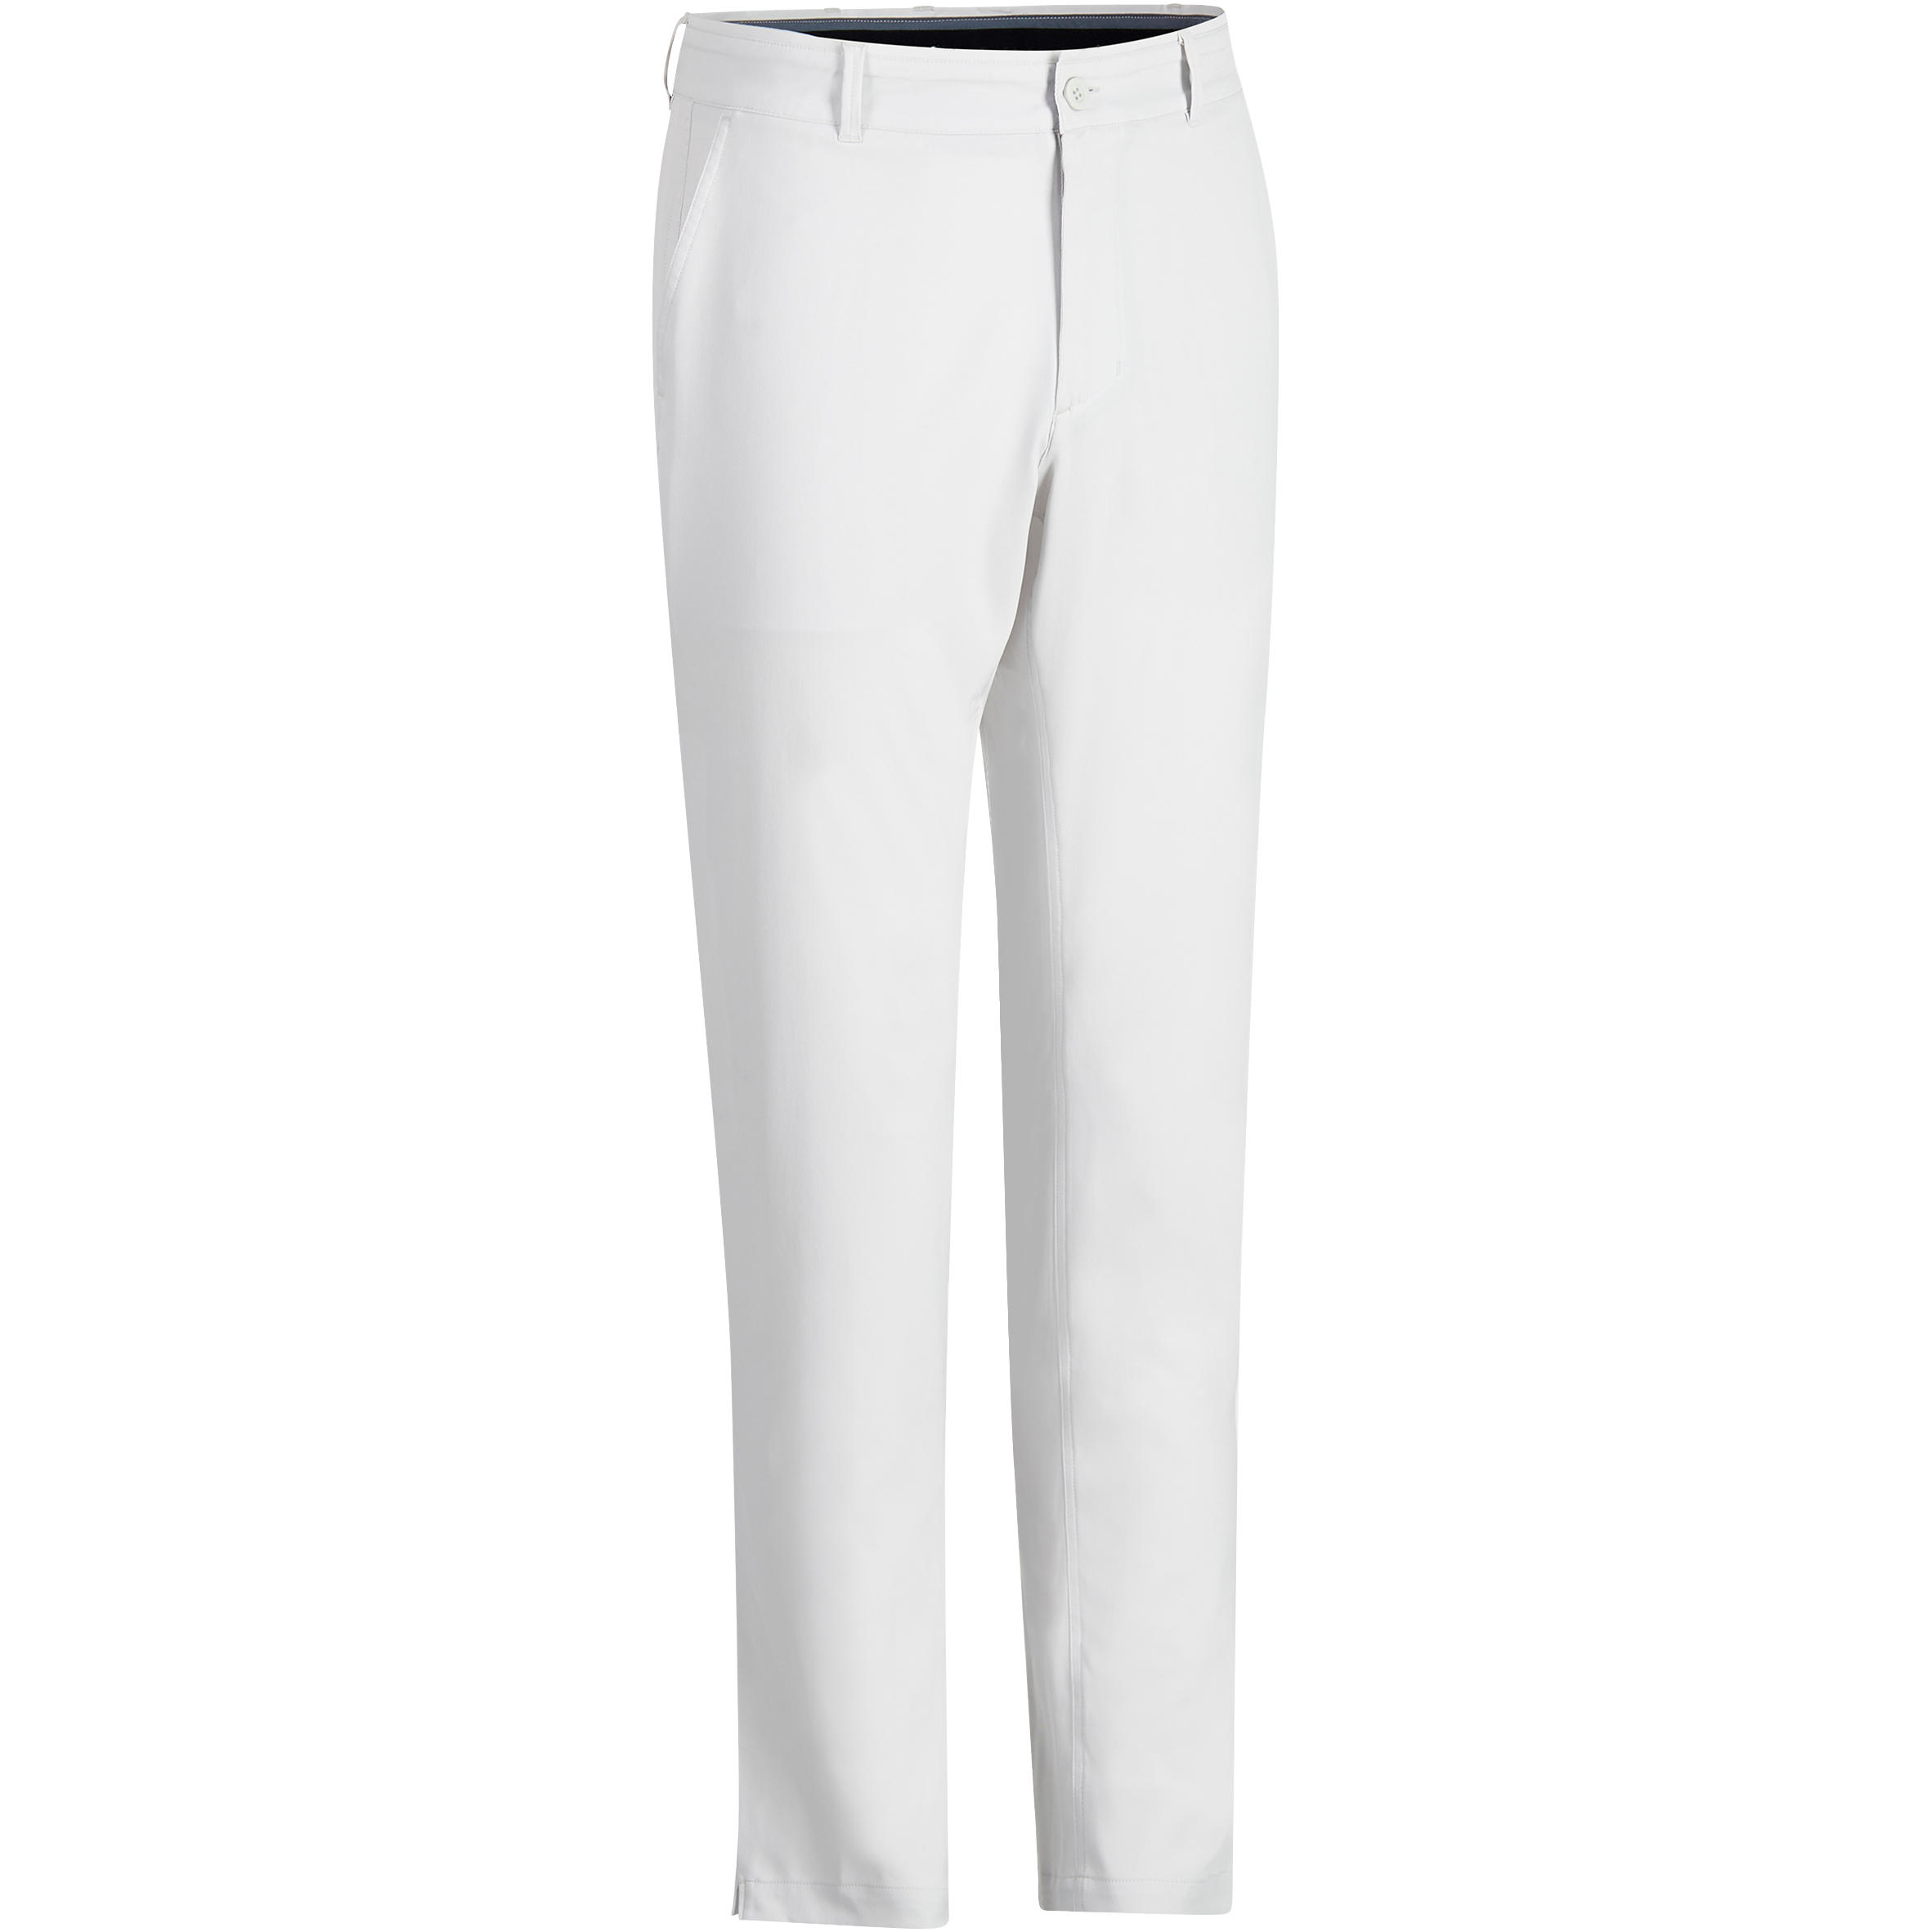 900 Men's Golf Warm Weather Trousers - Light Grey